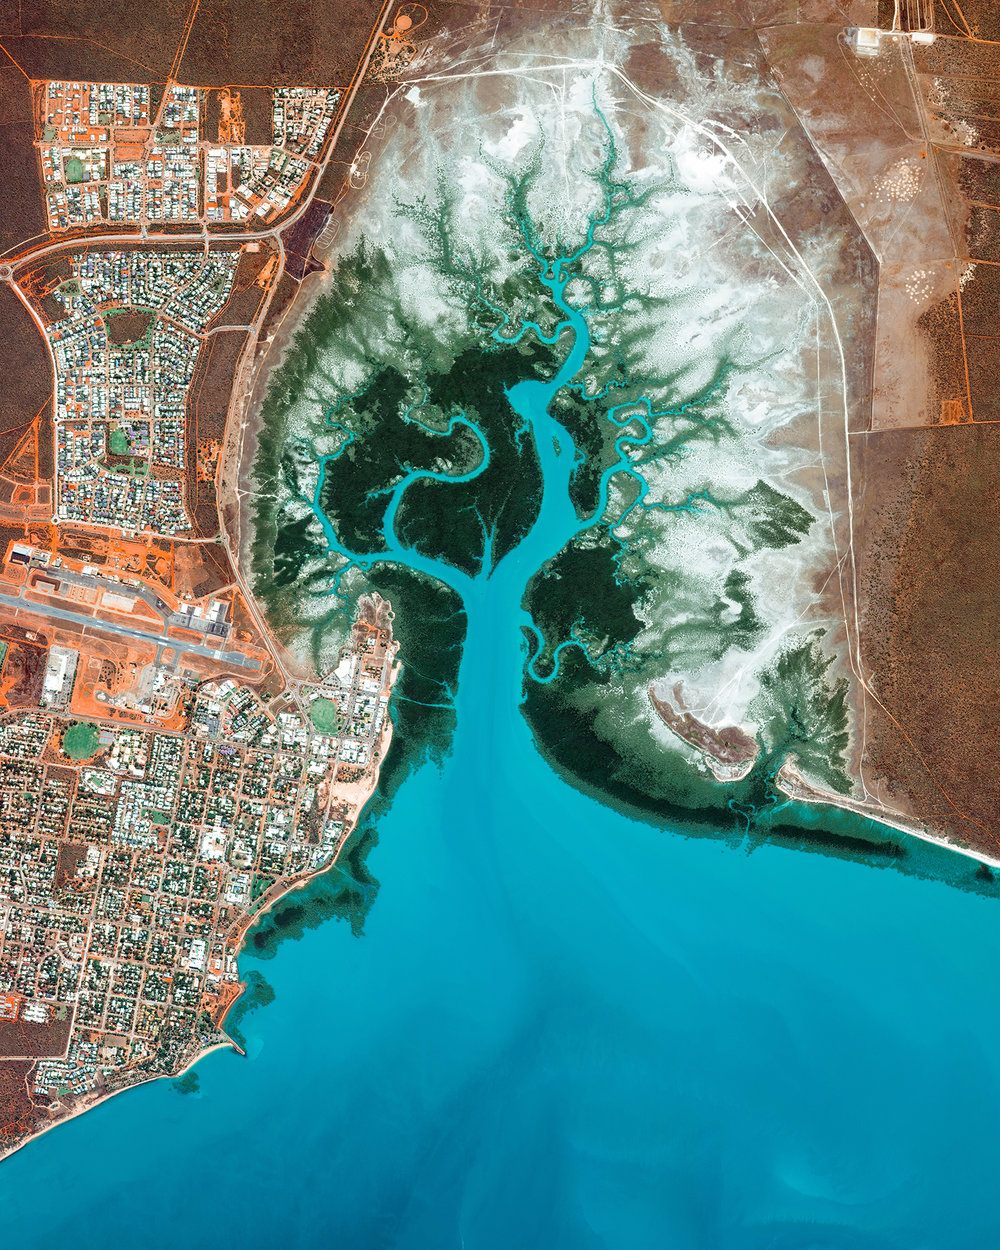 We are excited to announce our HOLIDAY SALE begins today with 20% off all prints! Check out our Printshop with the link in here:    www.dailyoverview.com/printshop    We also just added five pieces to the Printshop including this one of Broome, Australia! Use coupon code 'HOLIDAY20' to get your discount at checkout. Please note, international orders must be placed this week (before 12/1) to guarantee arrival before Christmas. Happy shopping!